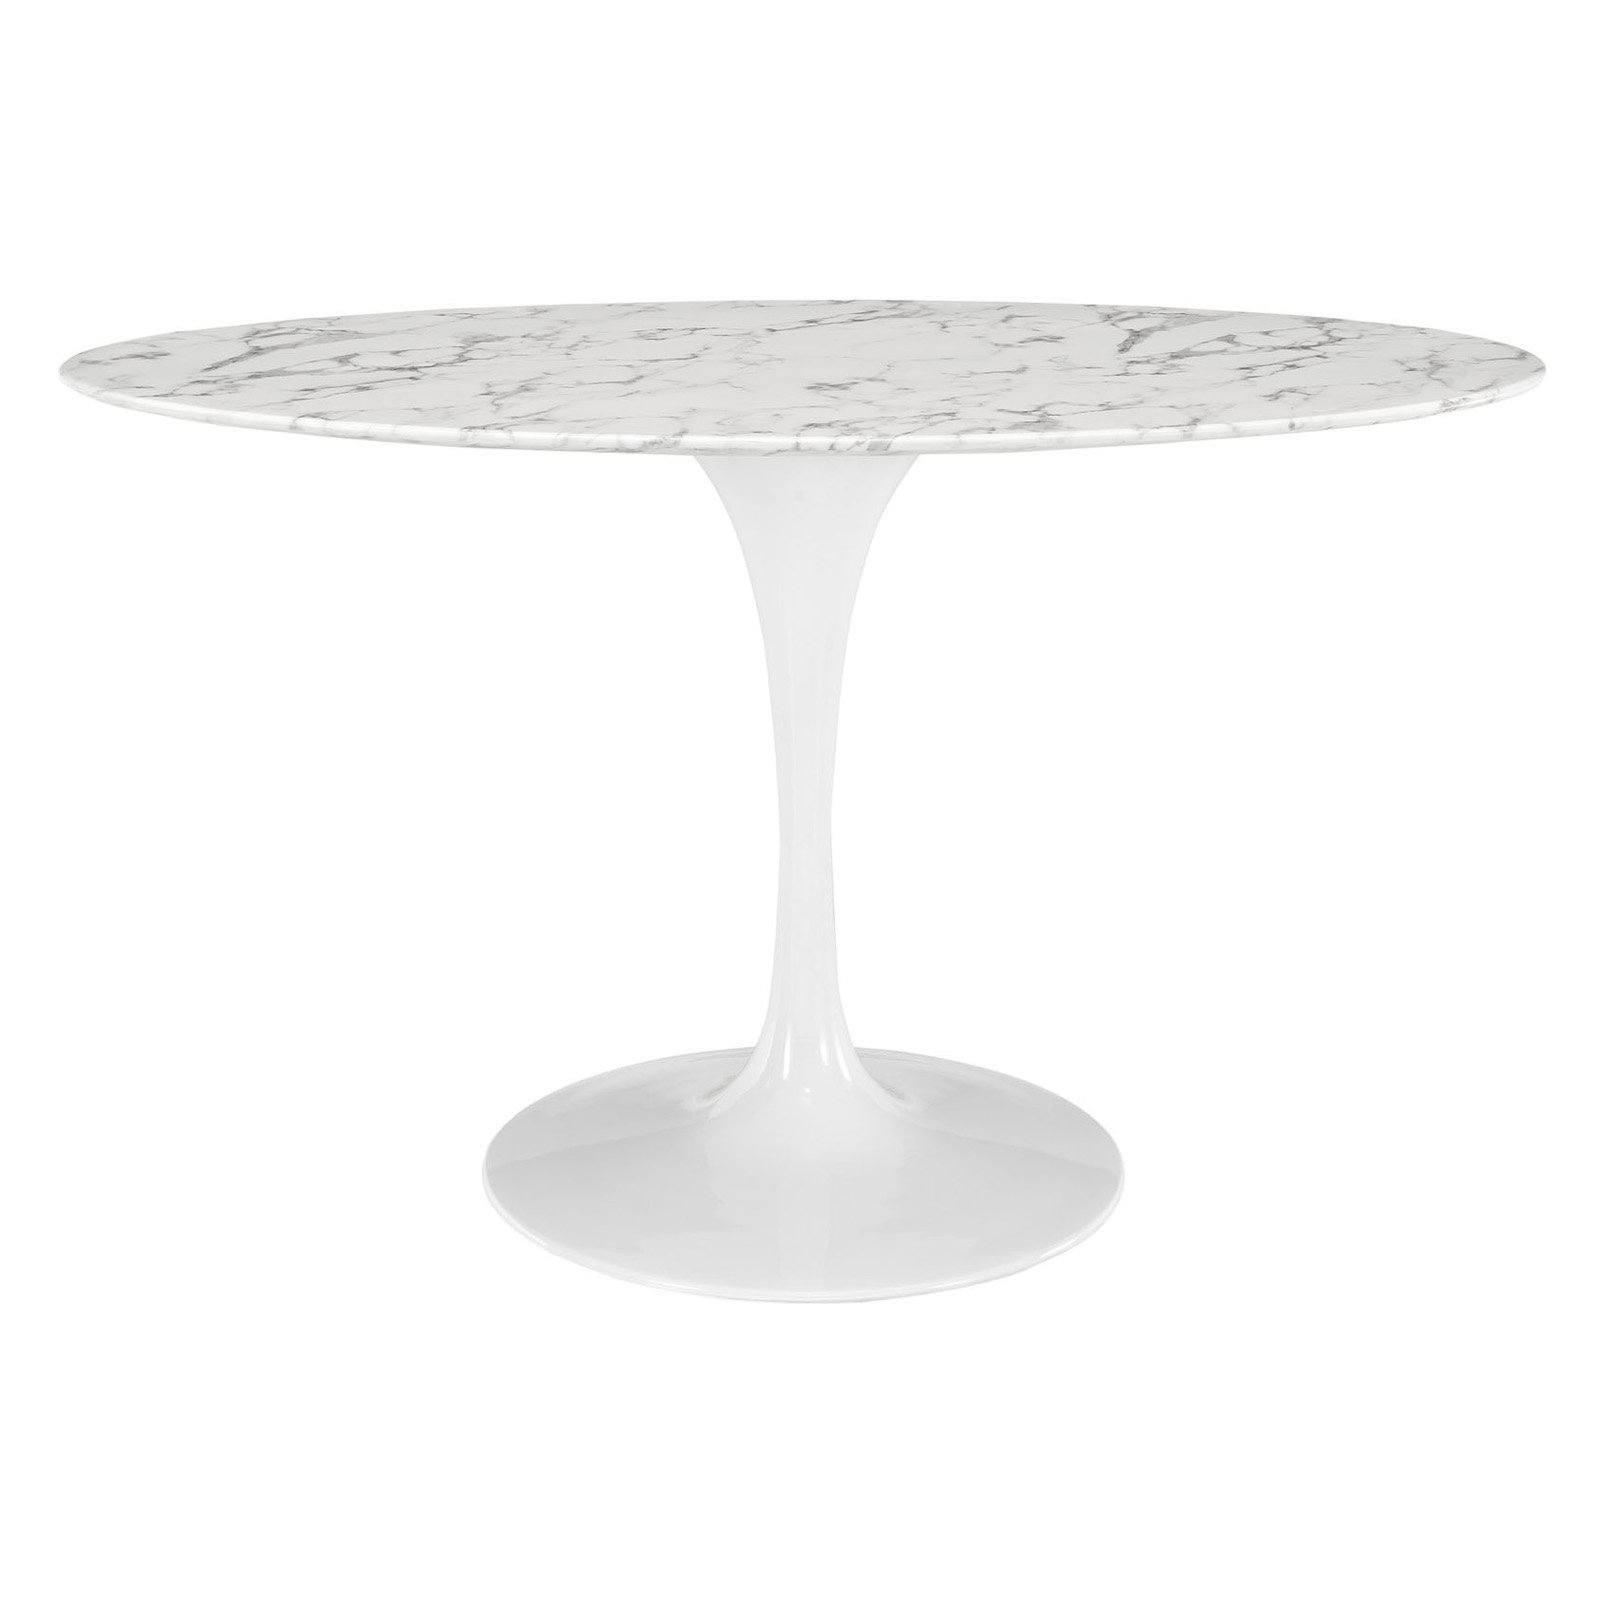 Modway Lippa Oval Dining Table